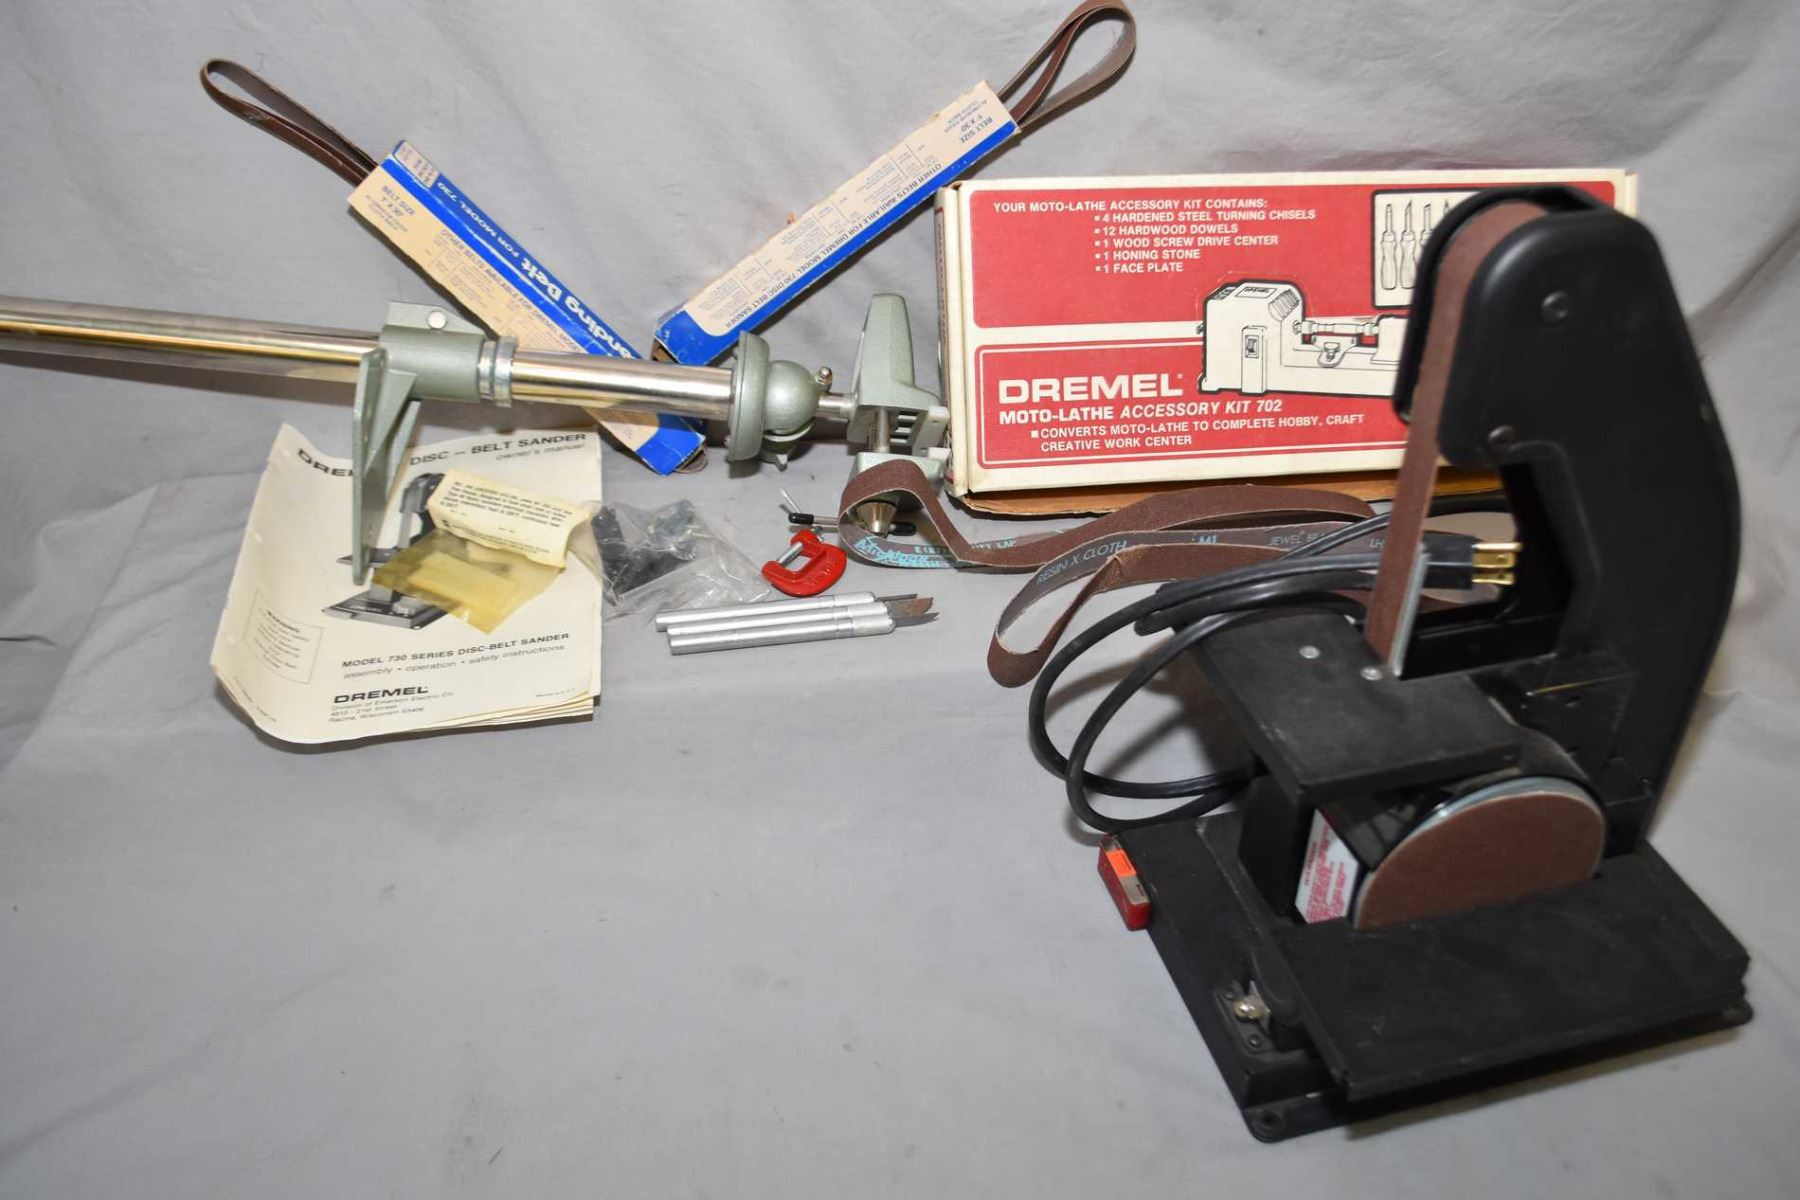 Dremel 730 Sander Parts Diagram Electrical Wiring Diagrams Schematic Drvasmb2051 Model Disc And Belt With Additional Belts Plus A